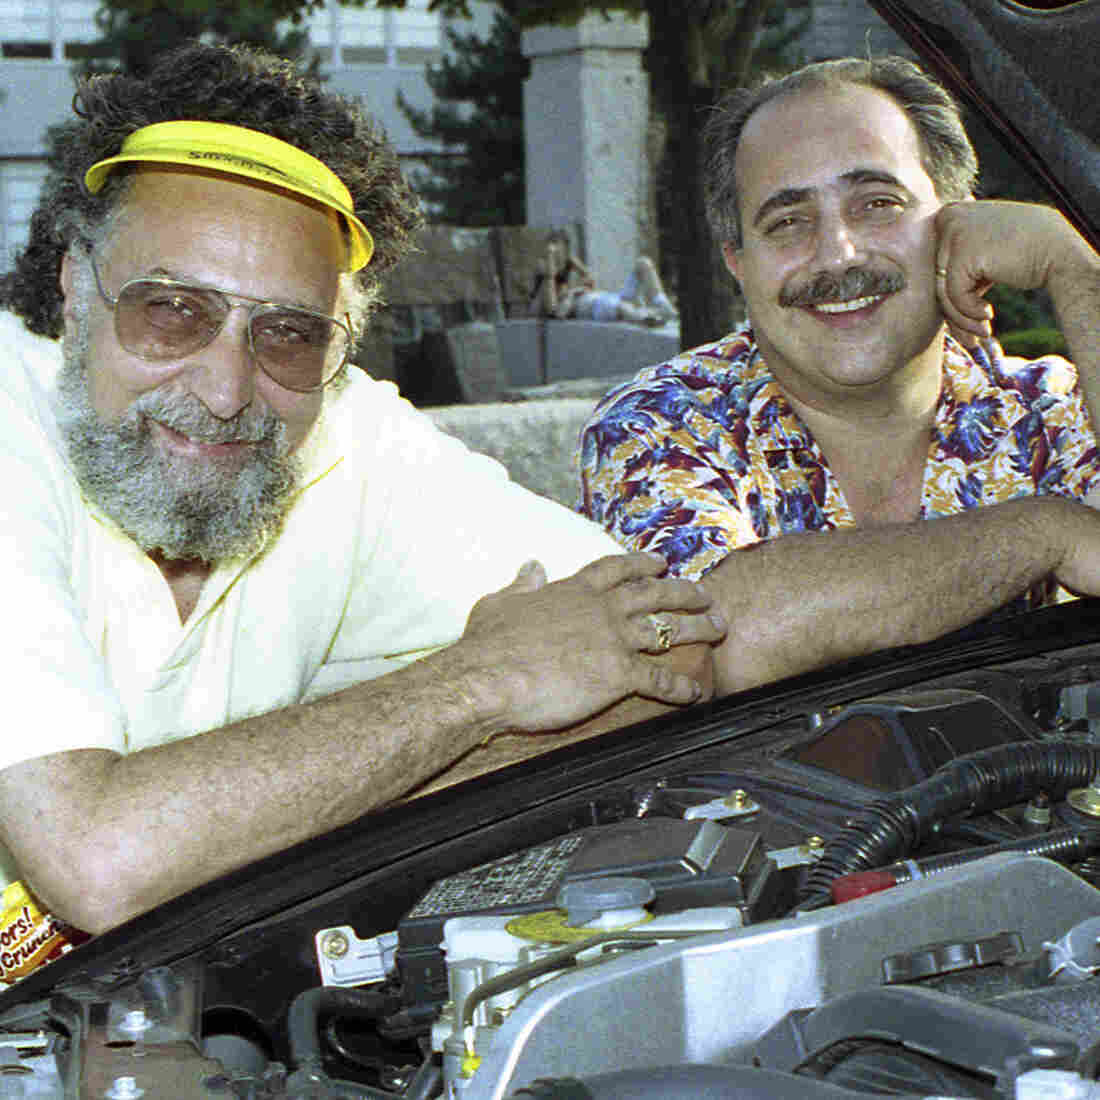 Brothers Tom (left) and Ray Magliozzi pose under a car hood in Boston. The comic duo hosted NPR's Car Talk for a quarter of a century before retiring in 2012. Since then, the show has been heard in reruns. Tom has died at age 77.